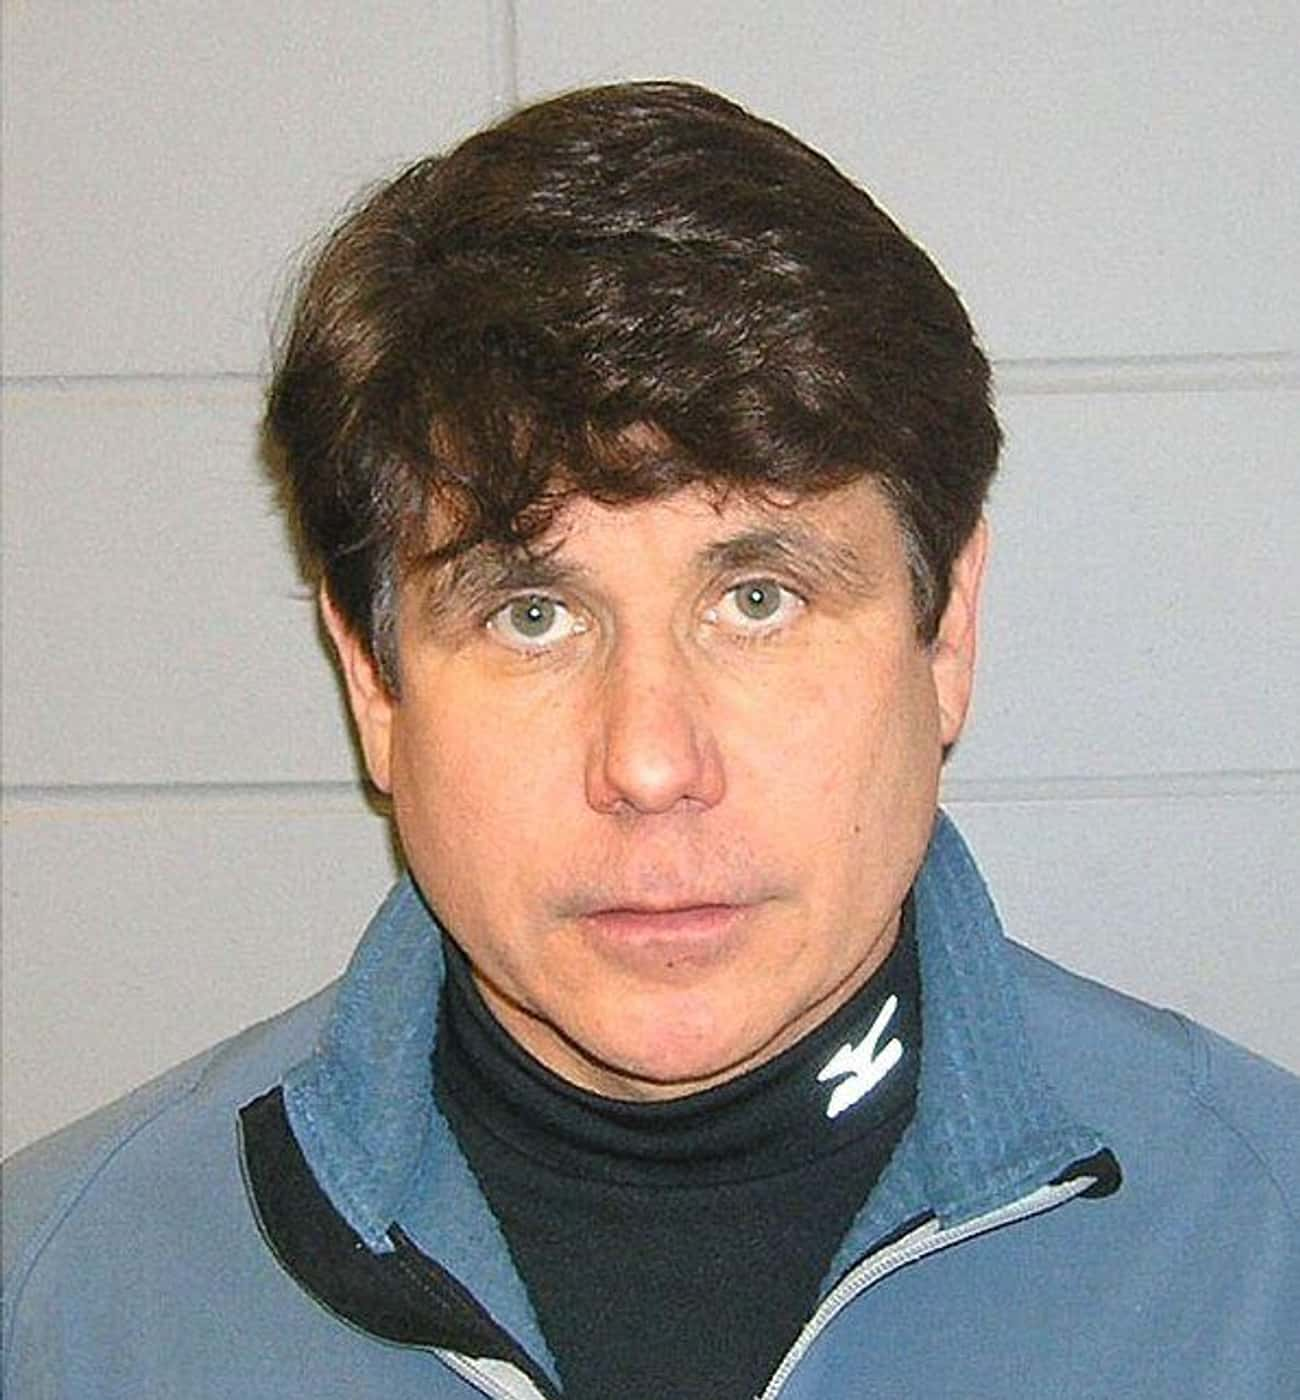 Rod Blagojevich Left Politics  is listed (or ranked) 2 on the list What Disgraced Politicians Did After Their Falls From Grace